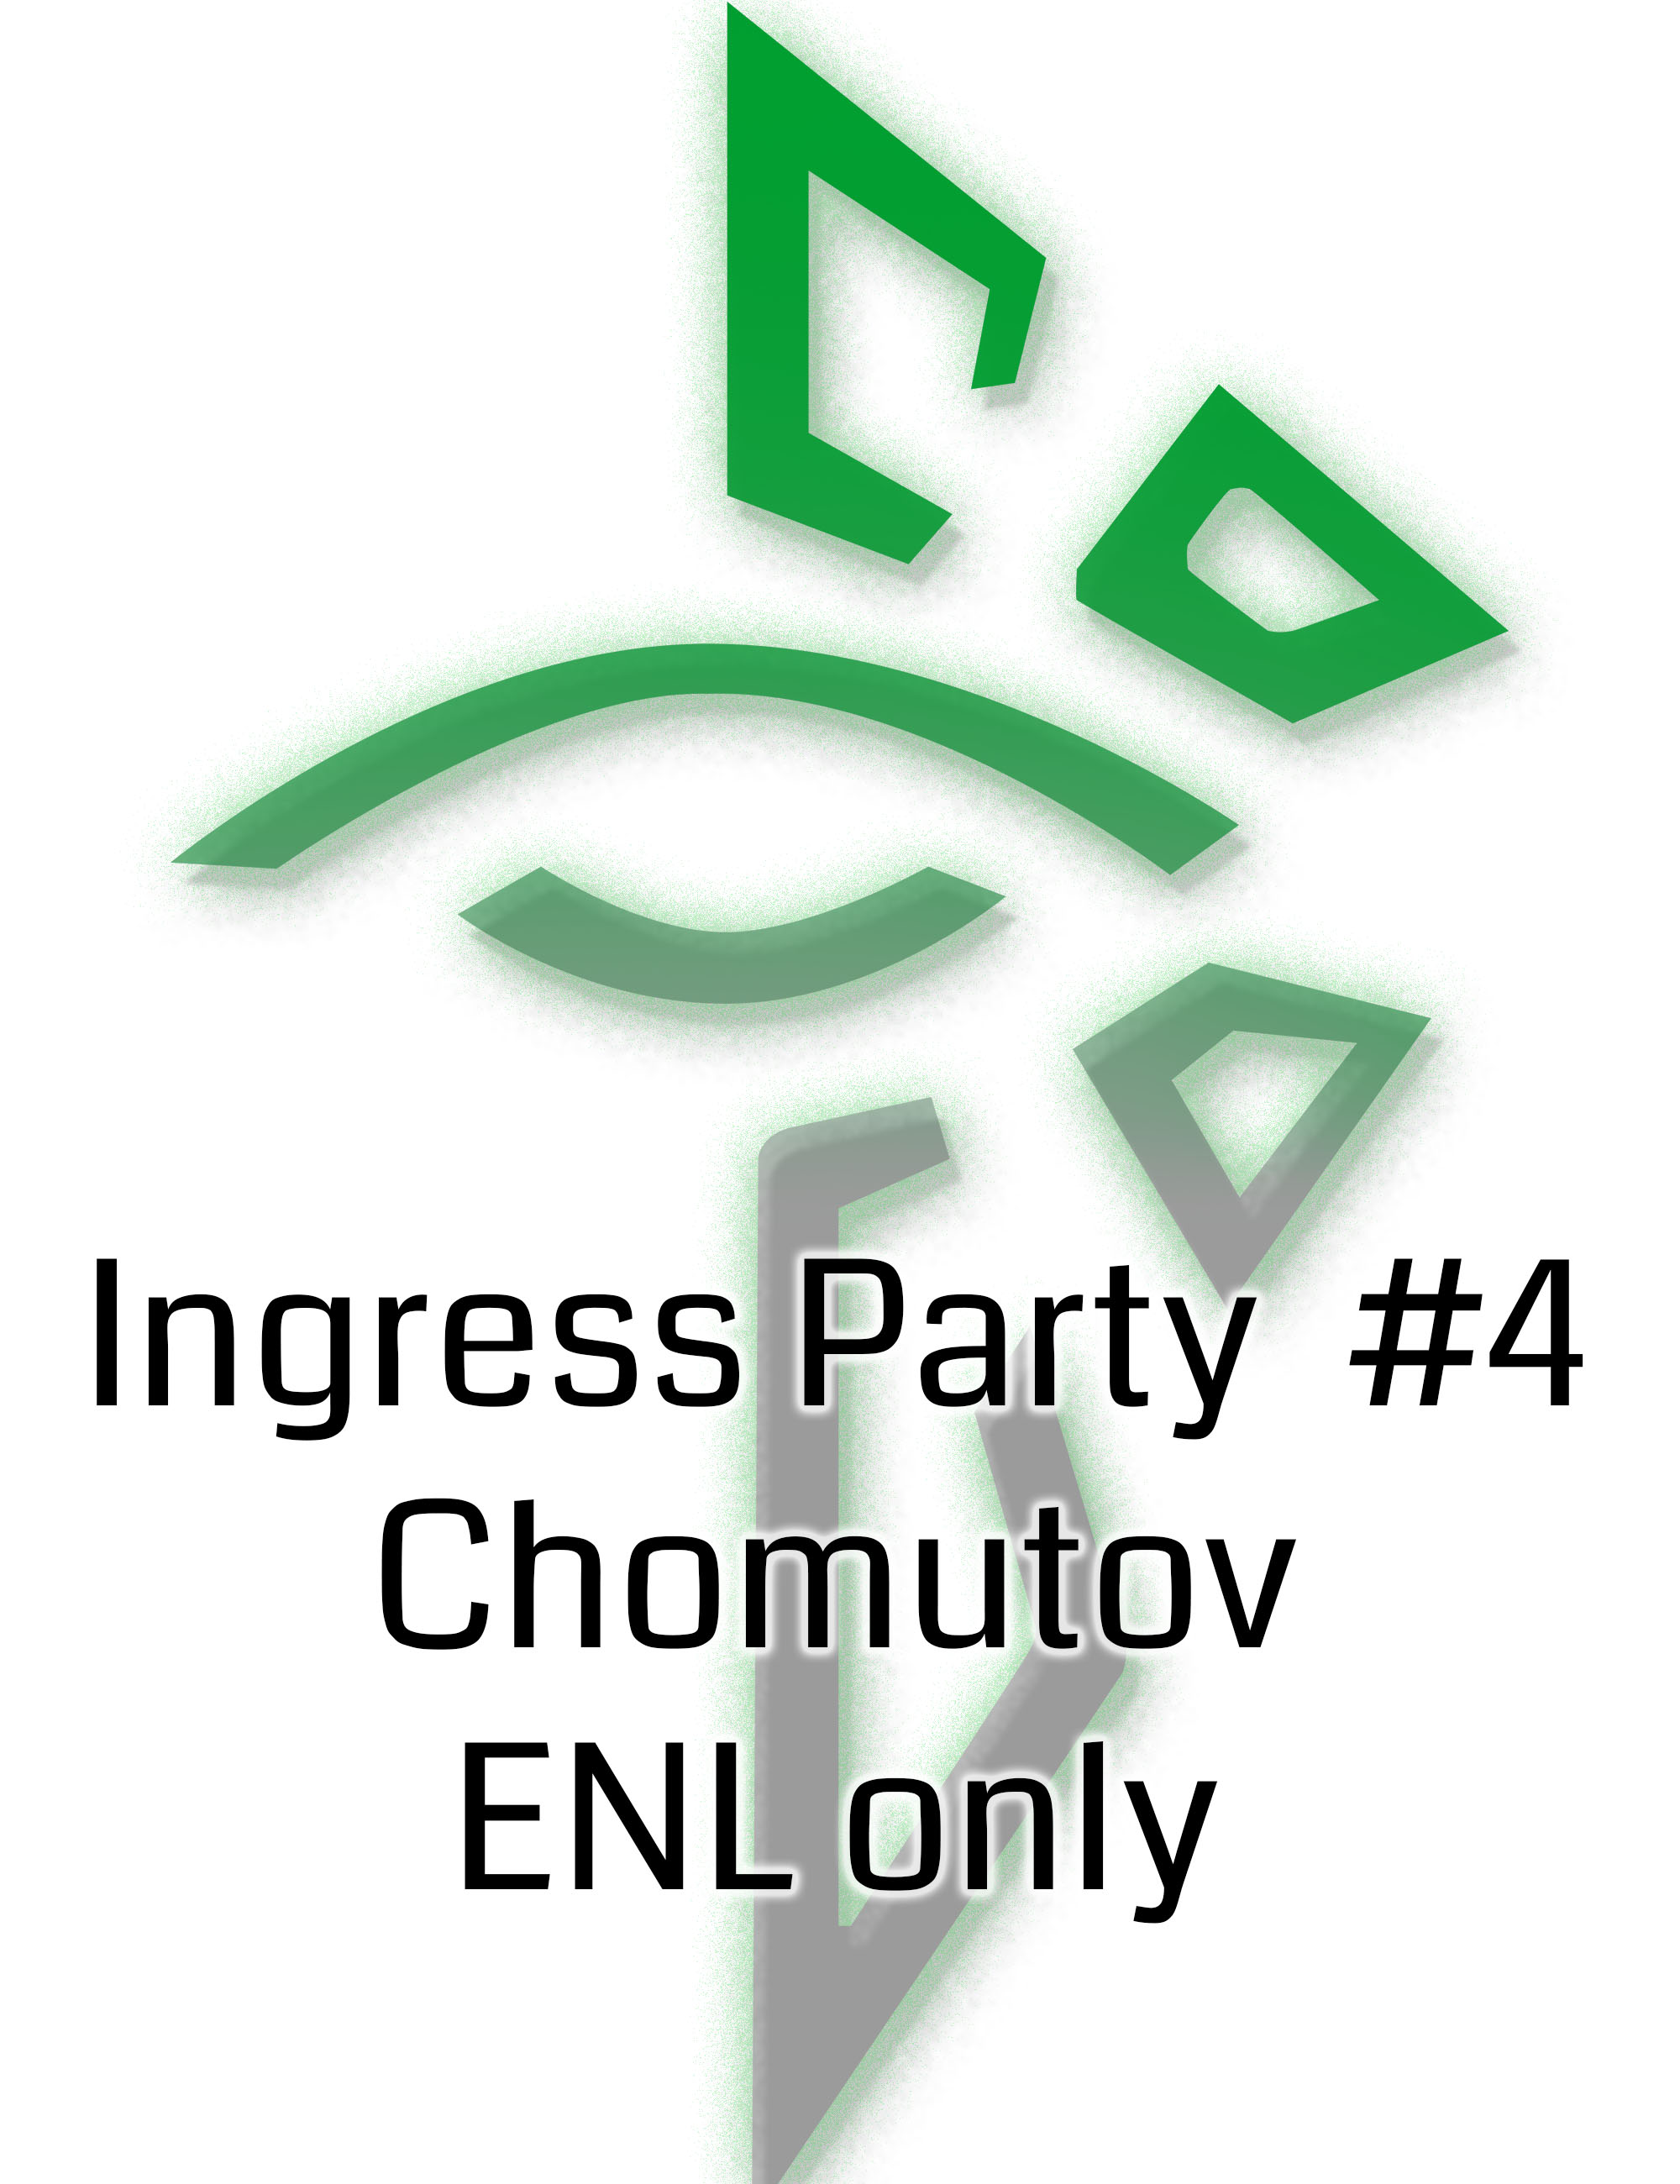 Ingress Party #4 - Chomutov - ENL only